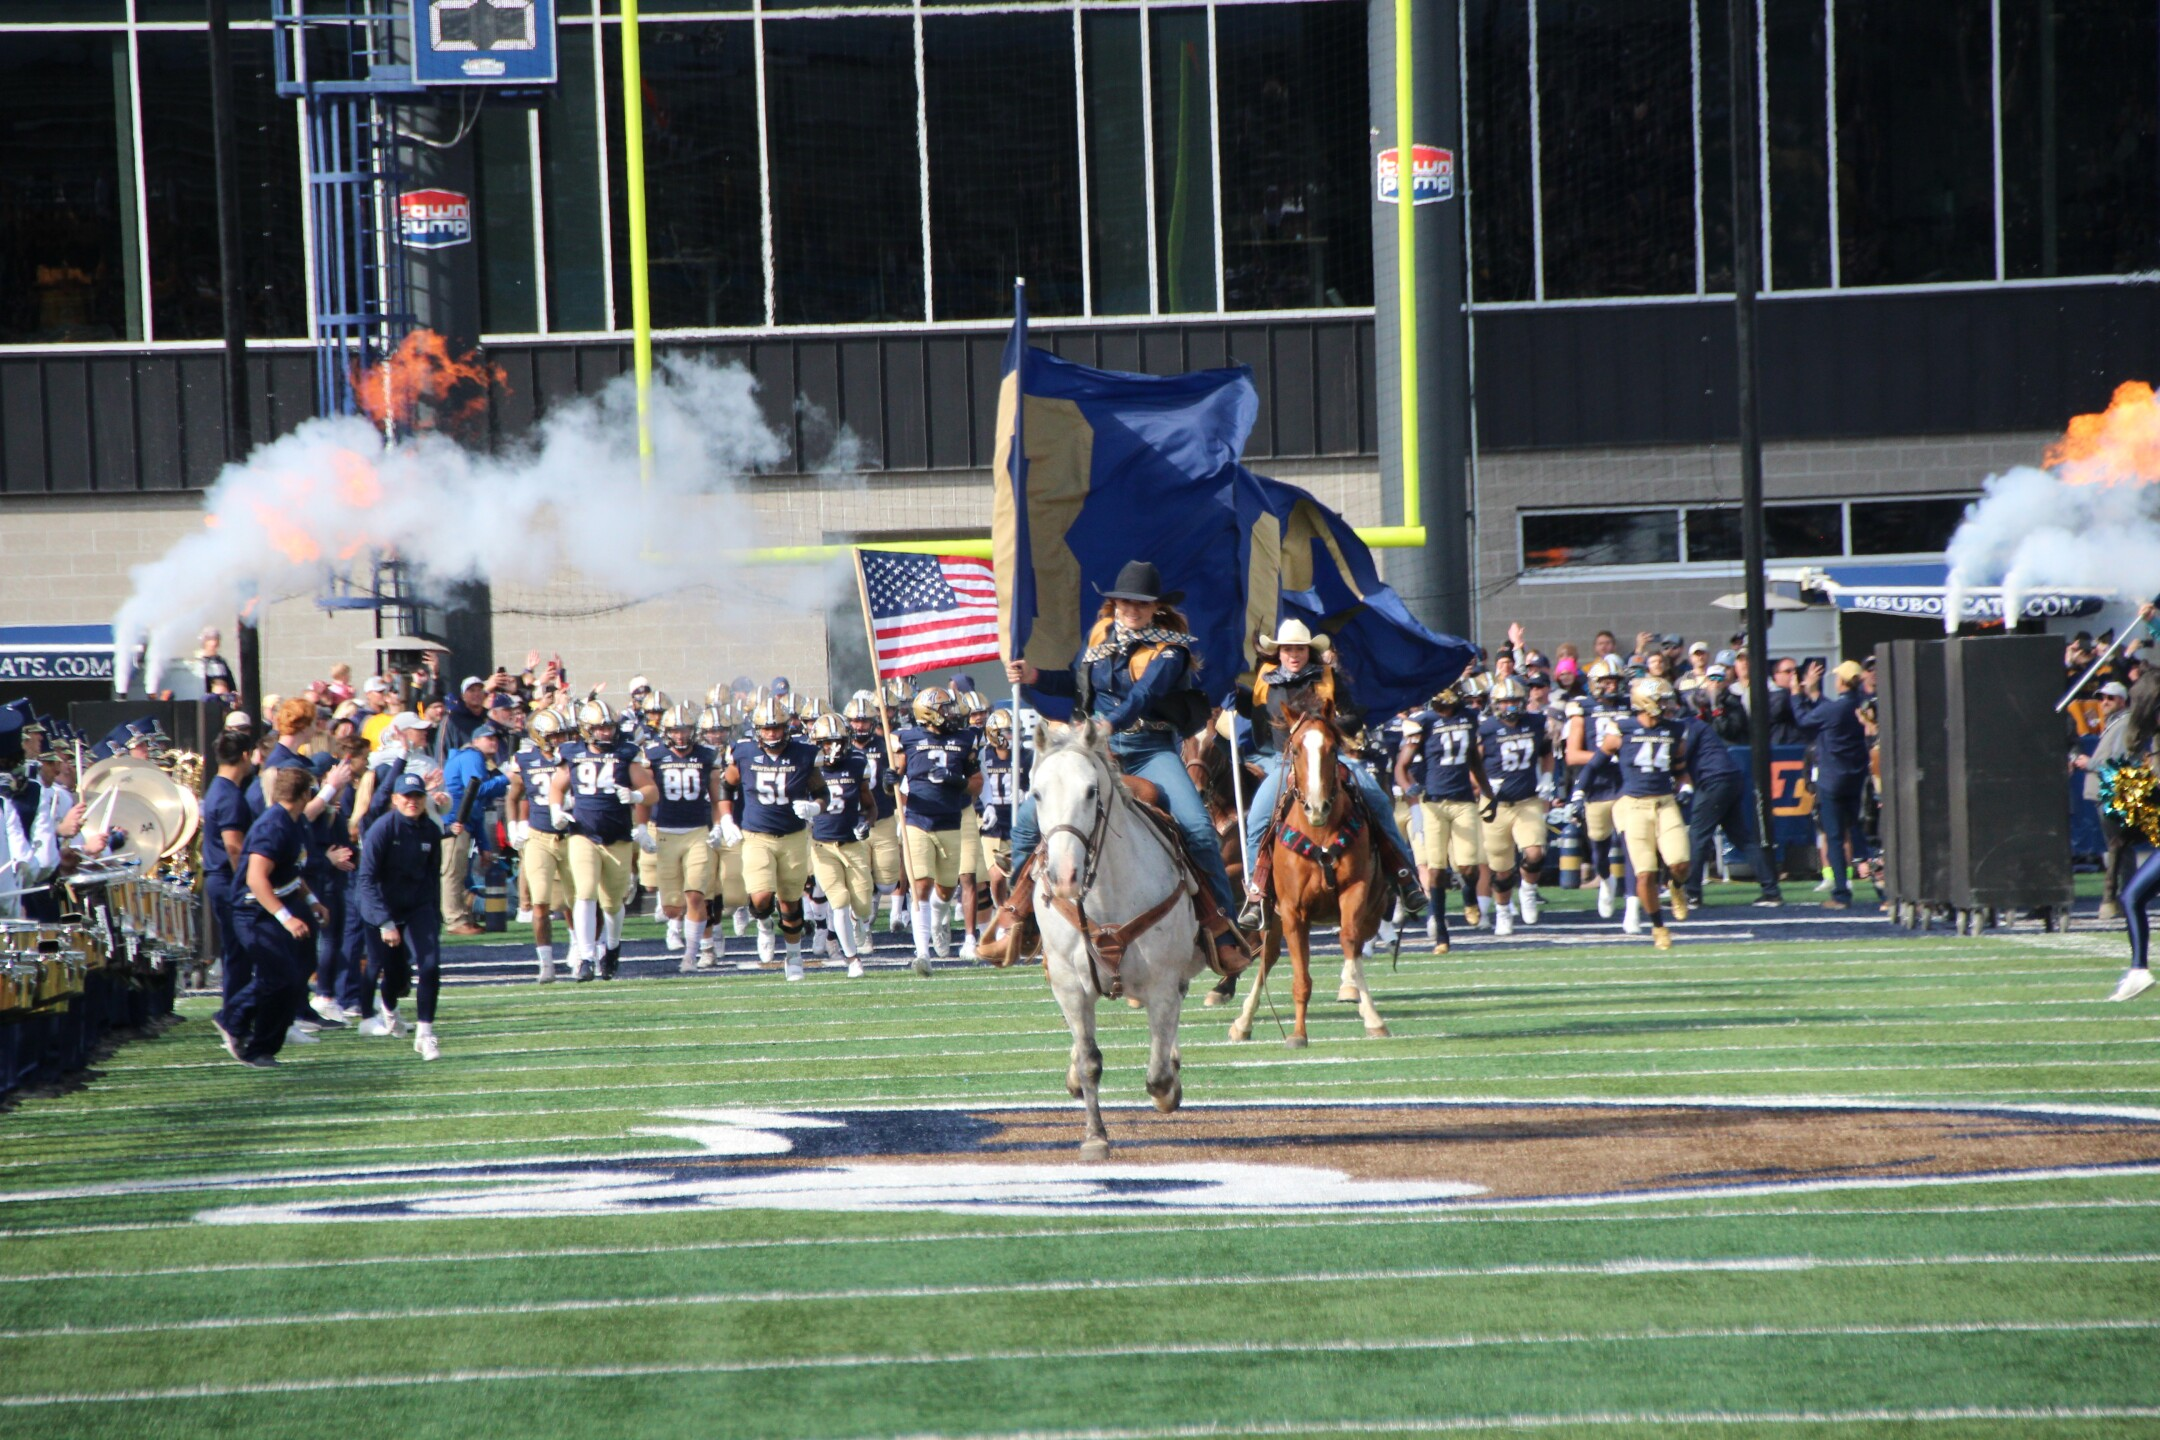 Montana State rodeo team rides in to start the game